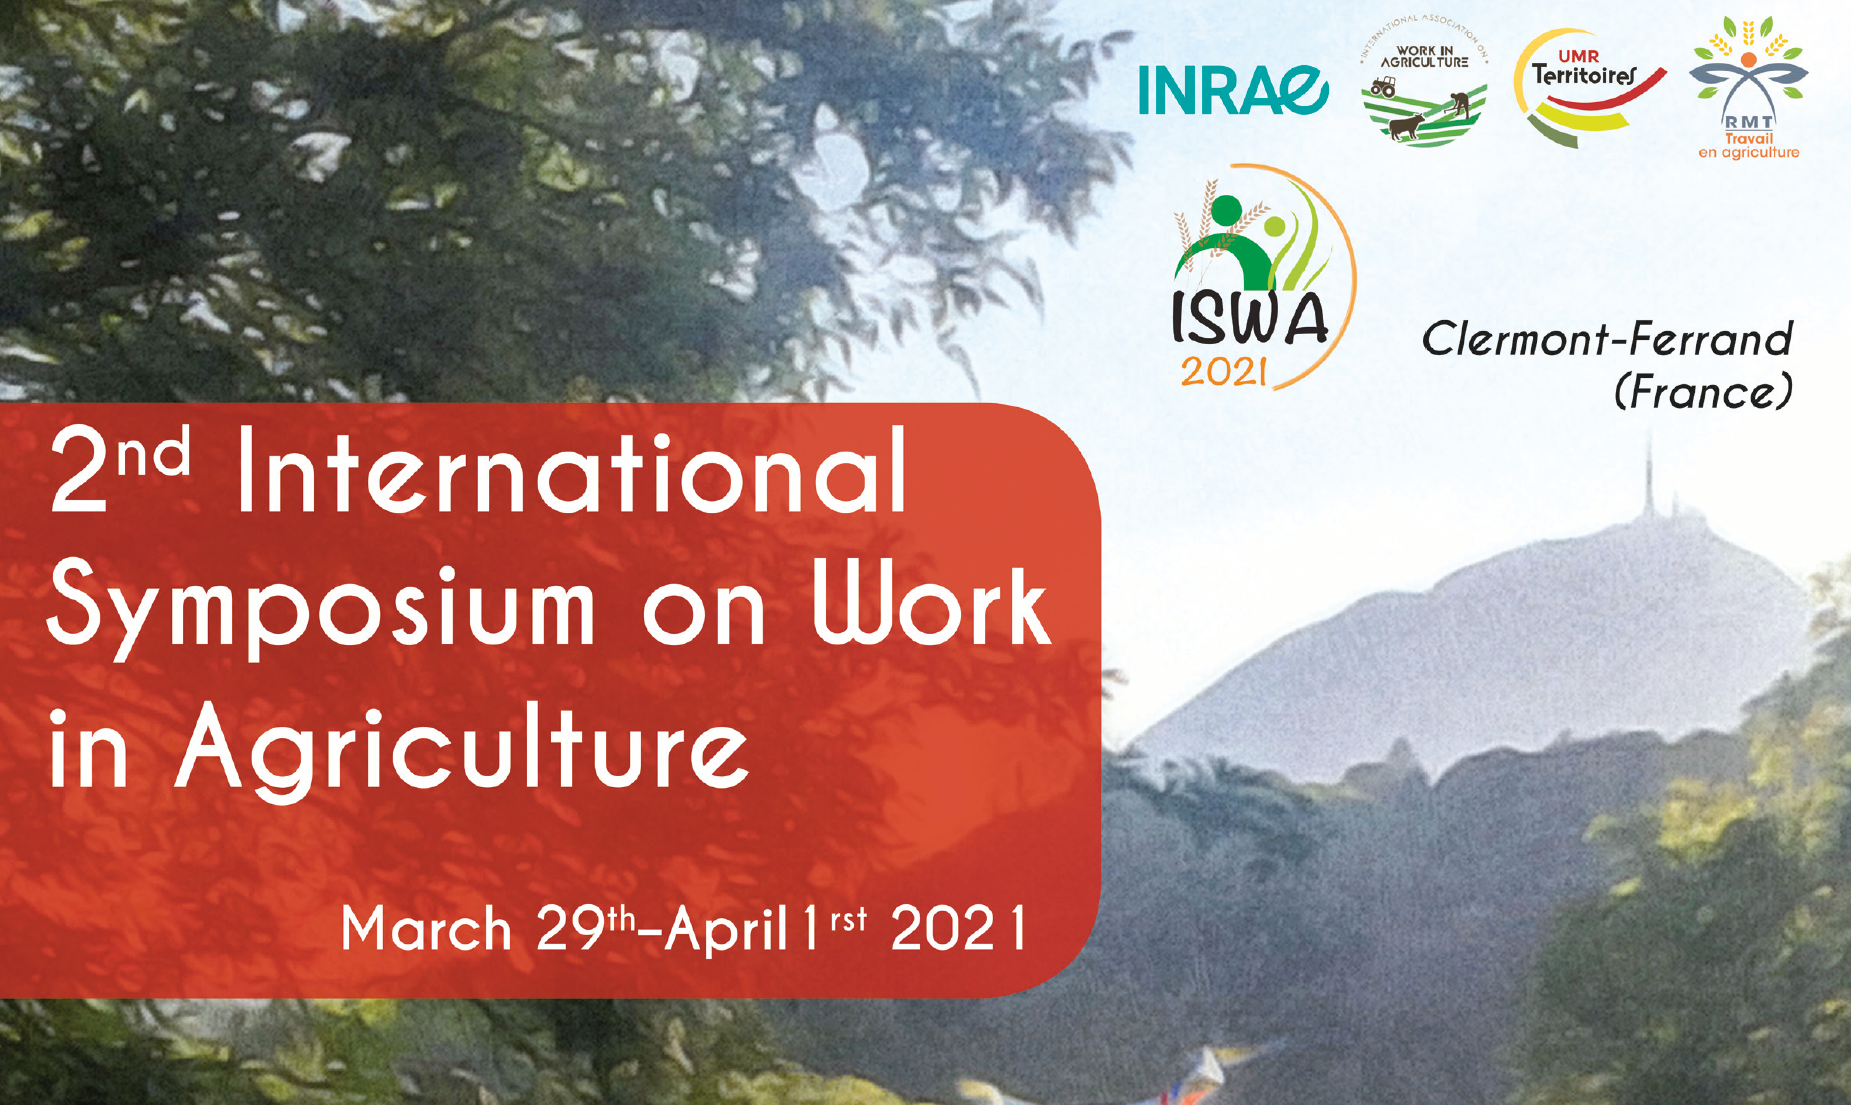 2nd International Symposium on Work in Agriculture, March 29th – April 1st, 2021 (virtual)